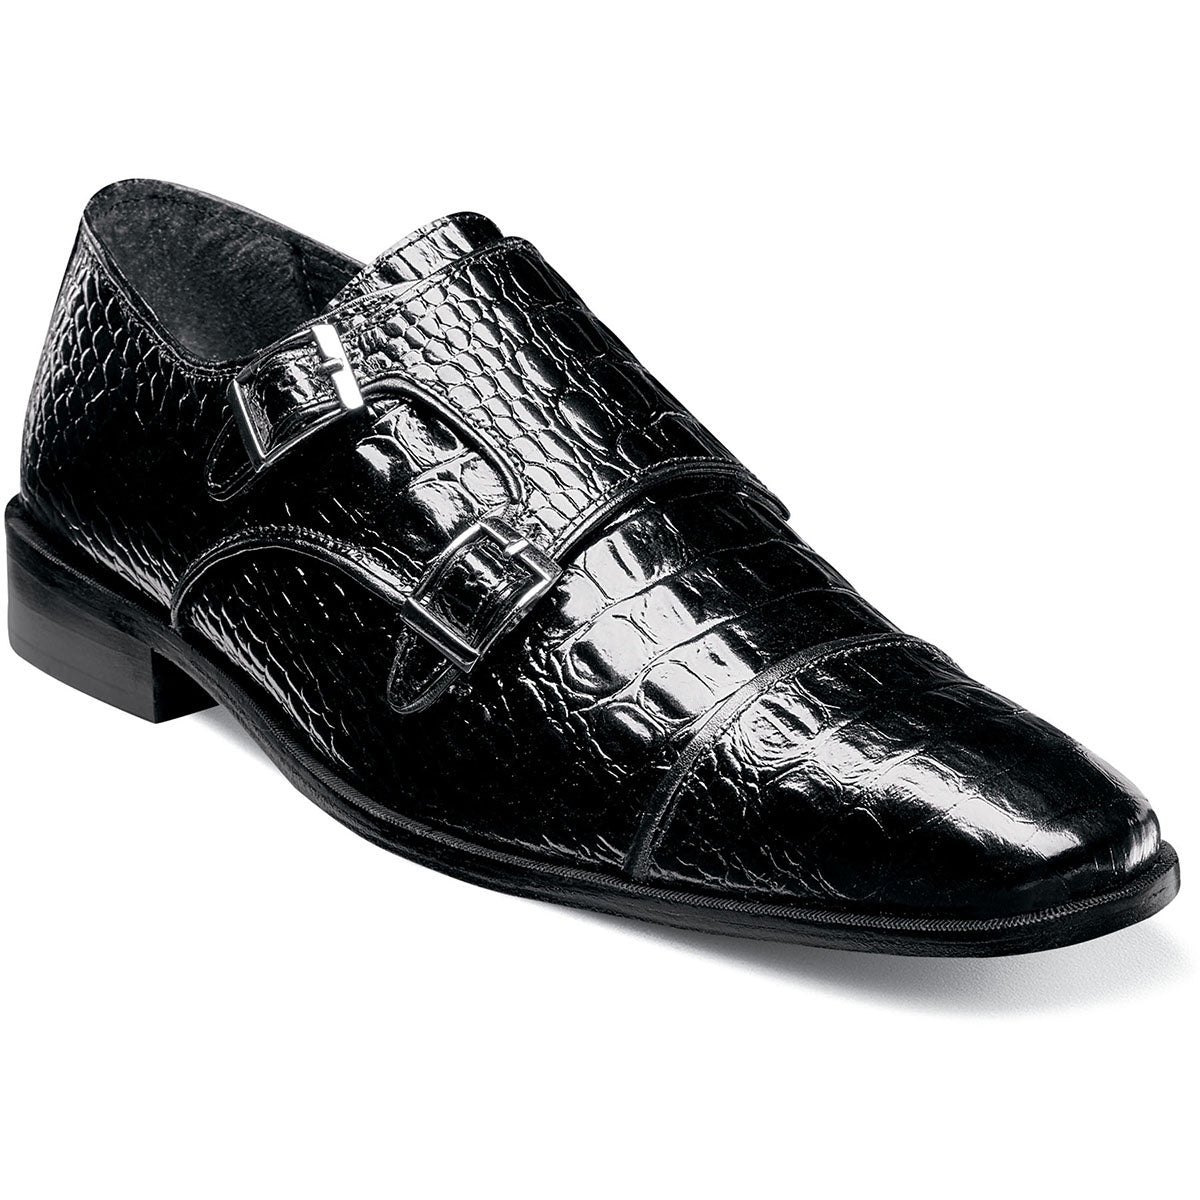 Stacy Adams Golato Cap Toe Double Monk Strap - Black Shoes - Dapperfam.com